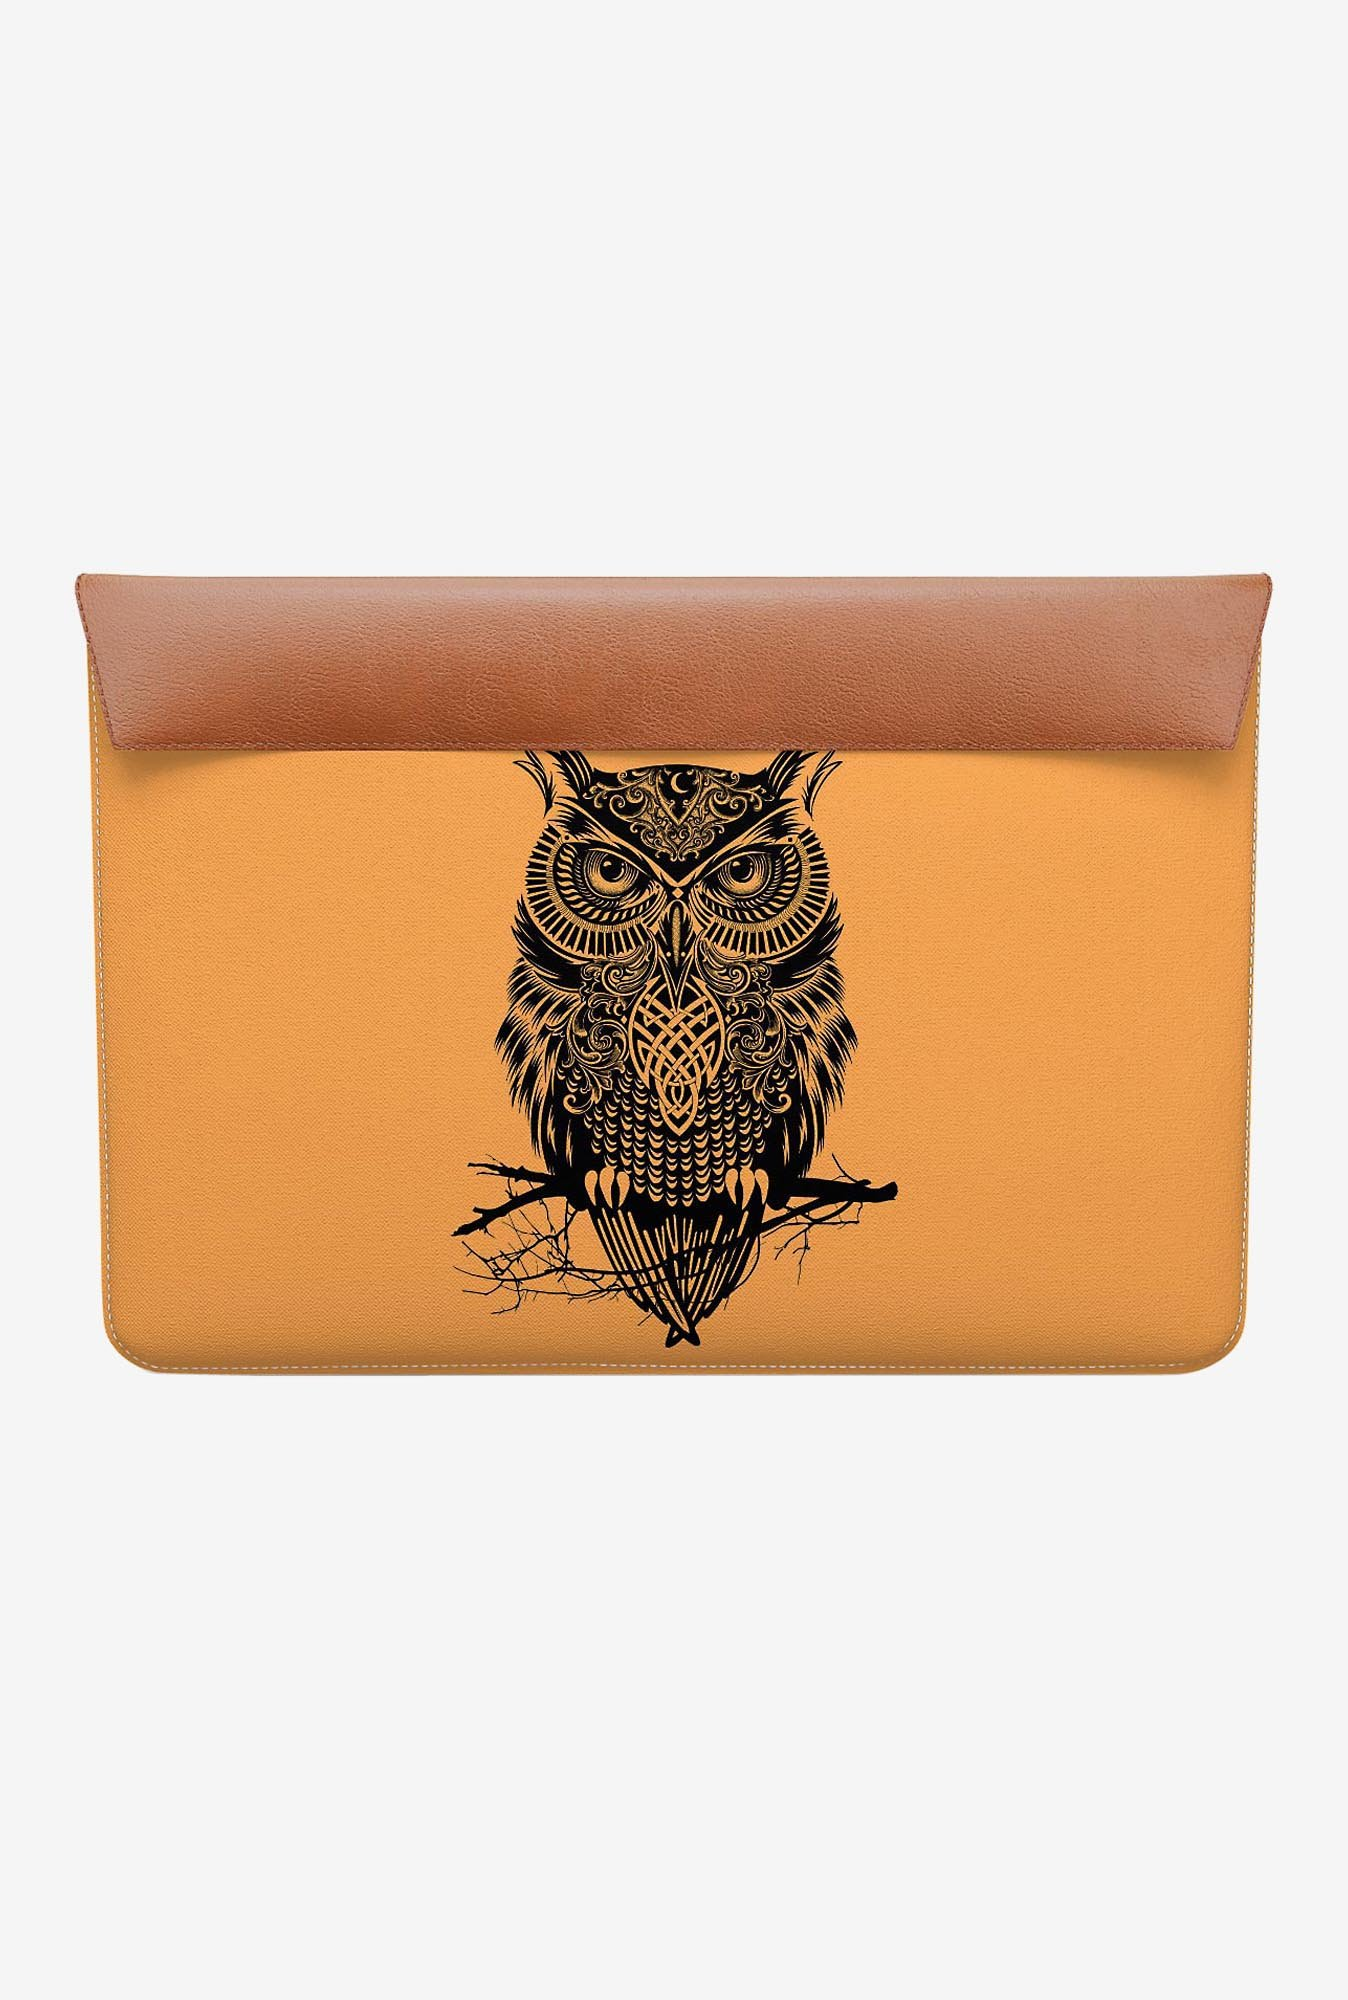 DailyObjects Warrior Owl MacBook Air 11 Envelope Sleeve